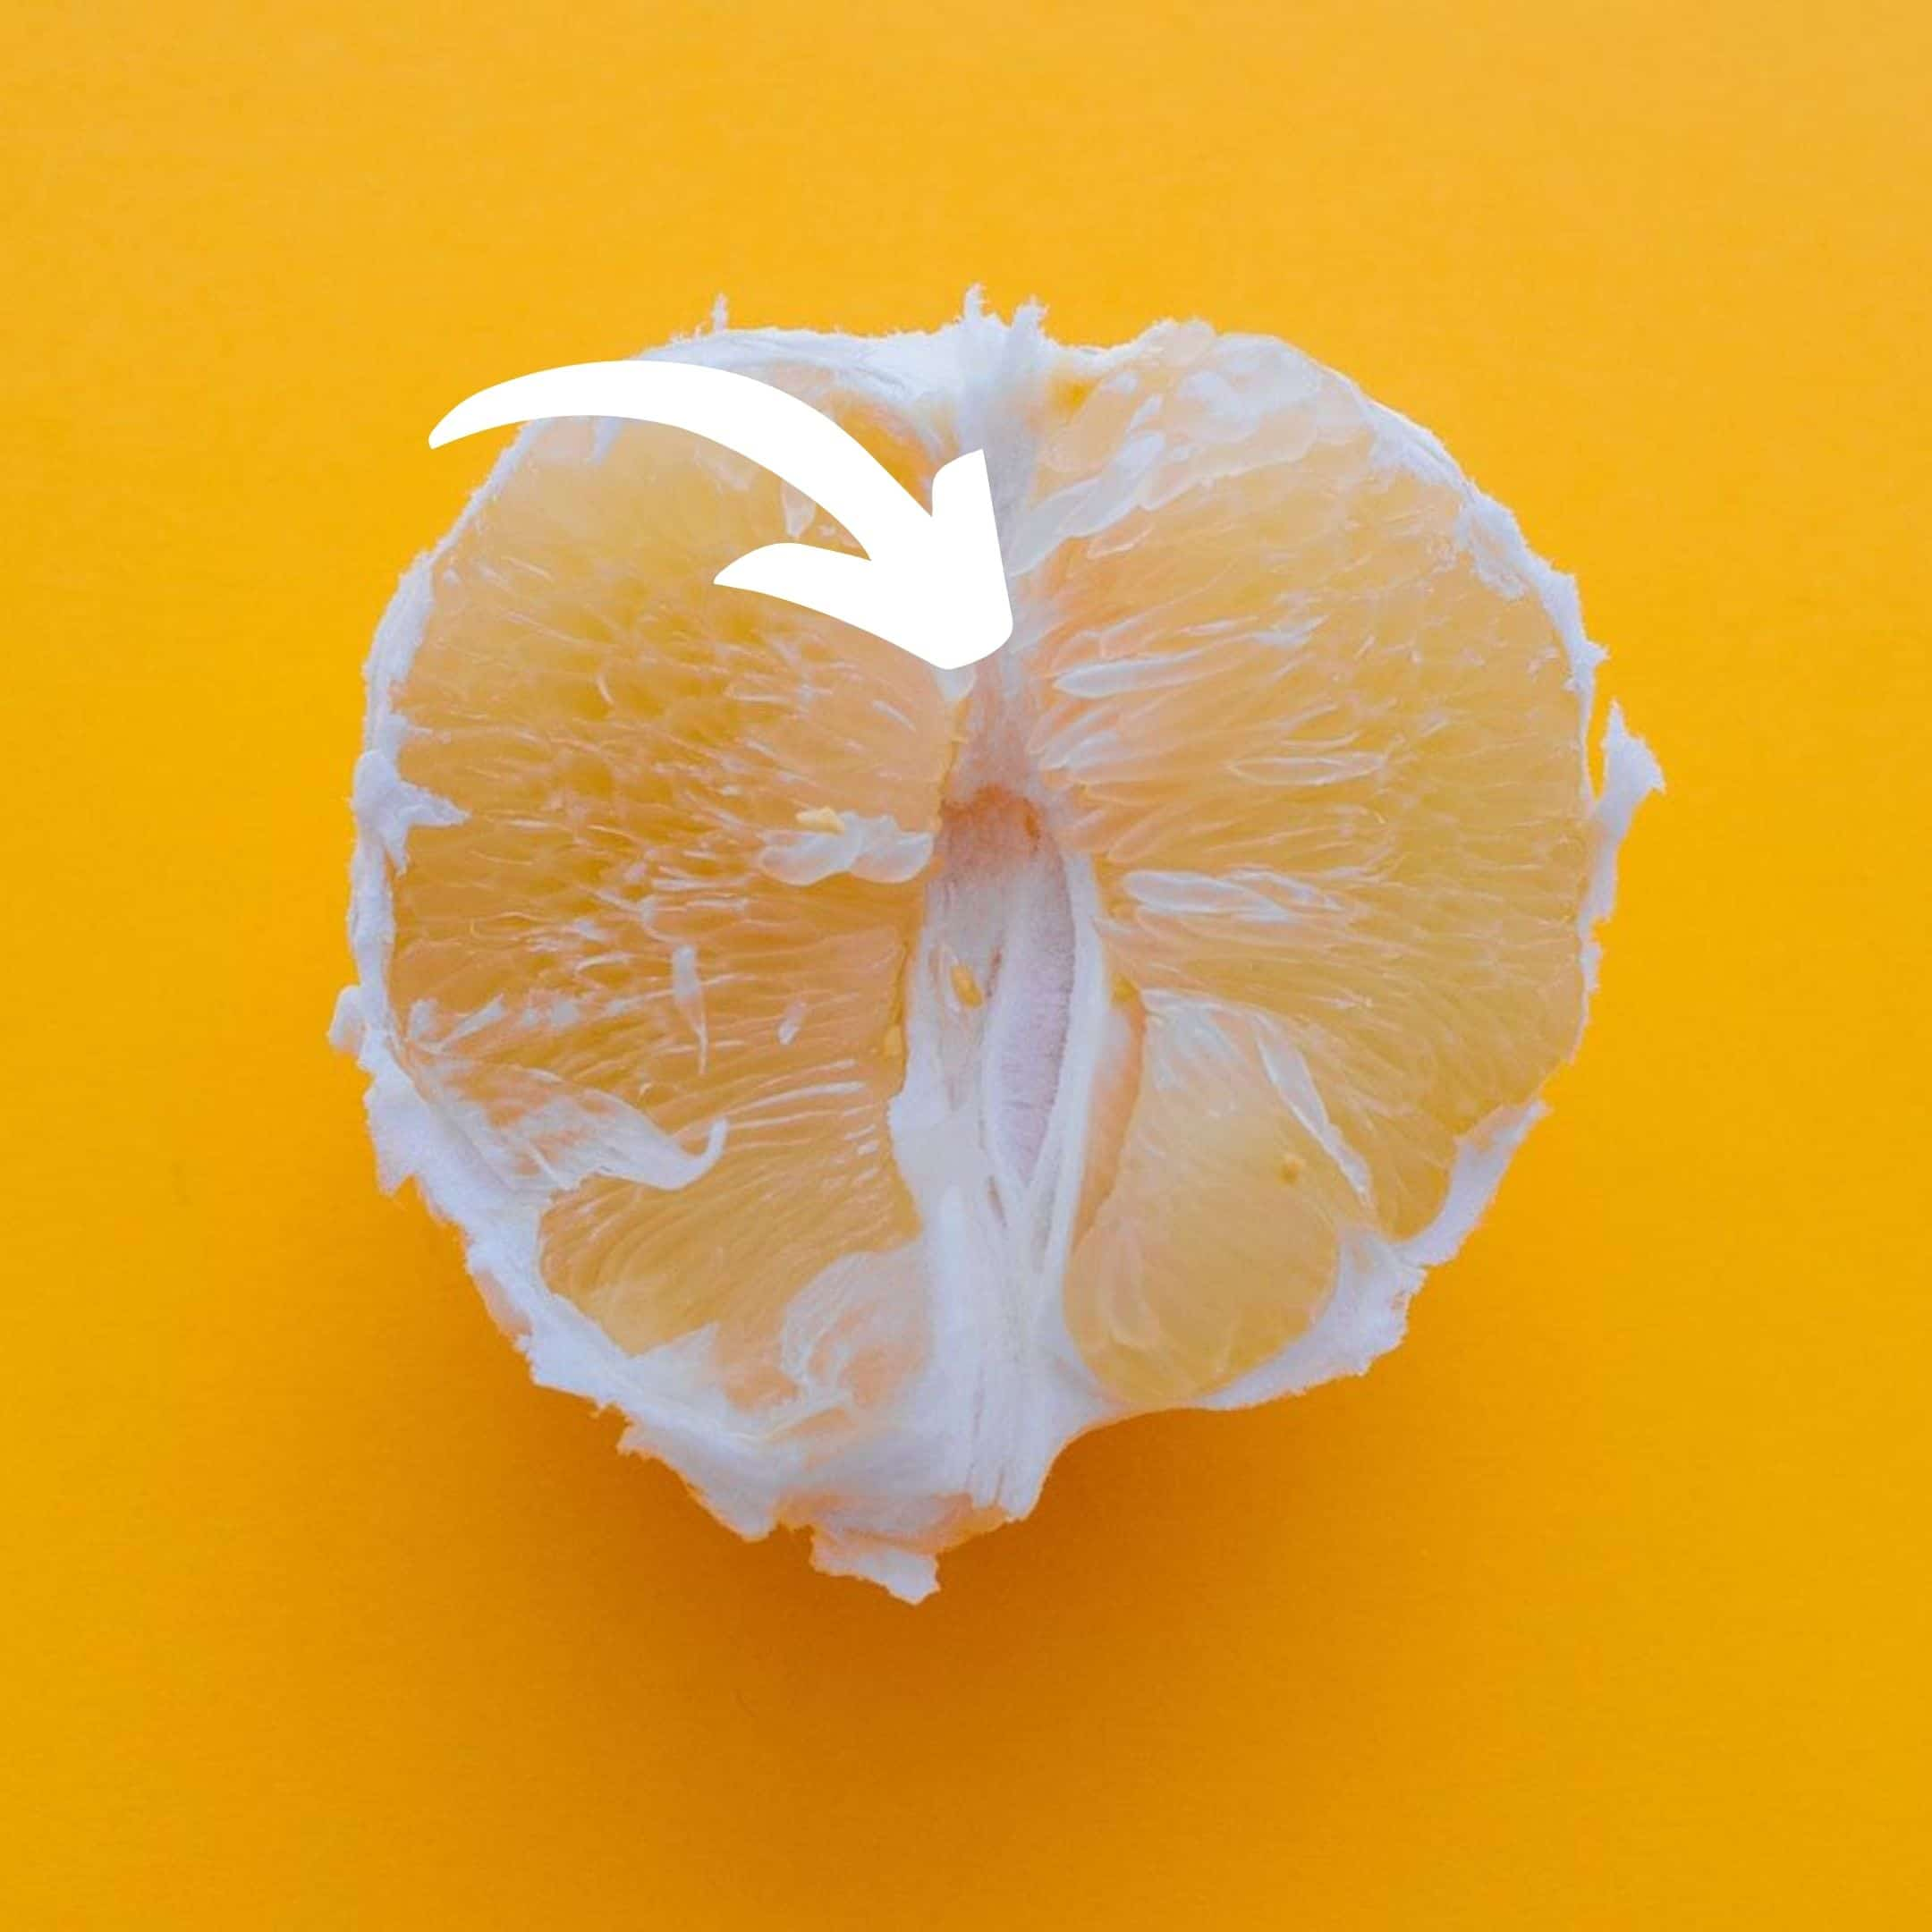 orange with an arrow indicating roughly where the vch would be placed